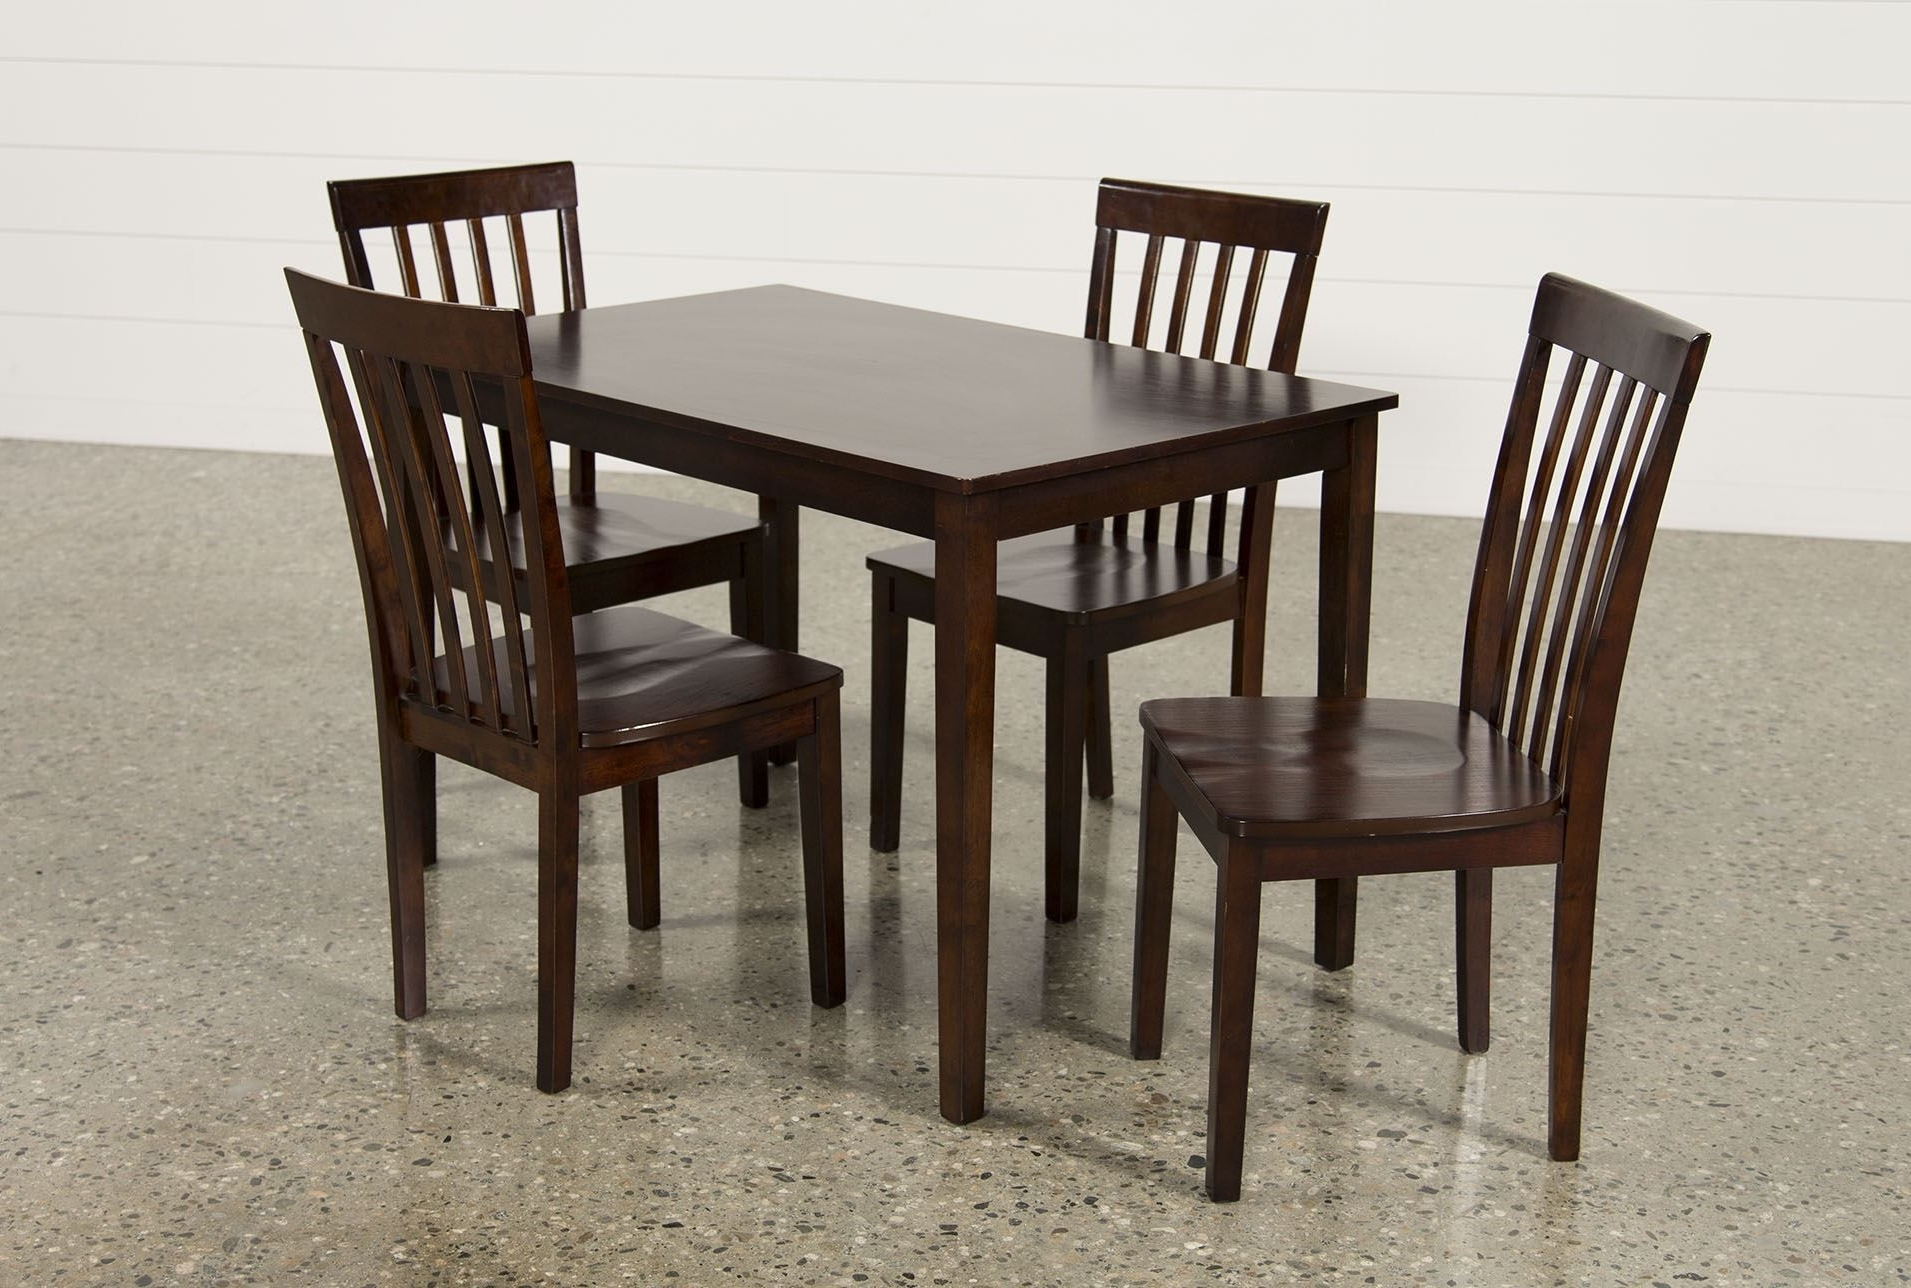 Jaxon 7 Piece Rectangle Dining Sets With Upholstered Chairs Inside Current Dining Set Living Spaces (View 21 of 25)